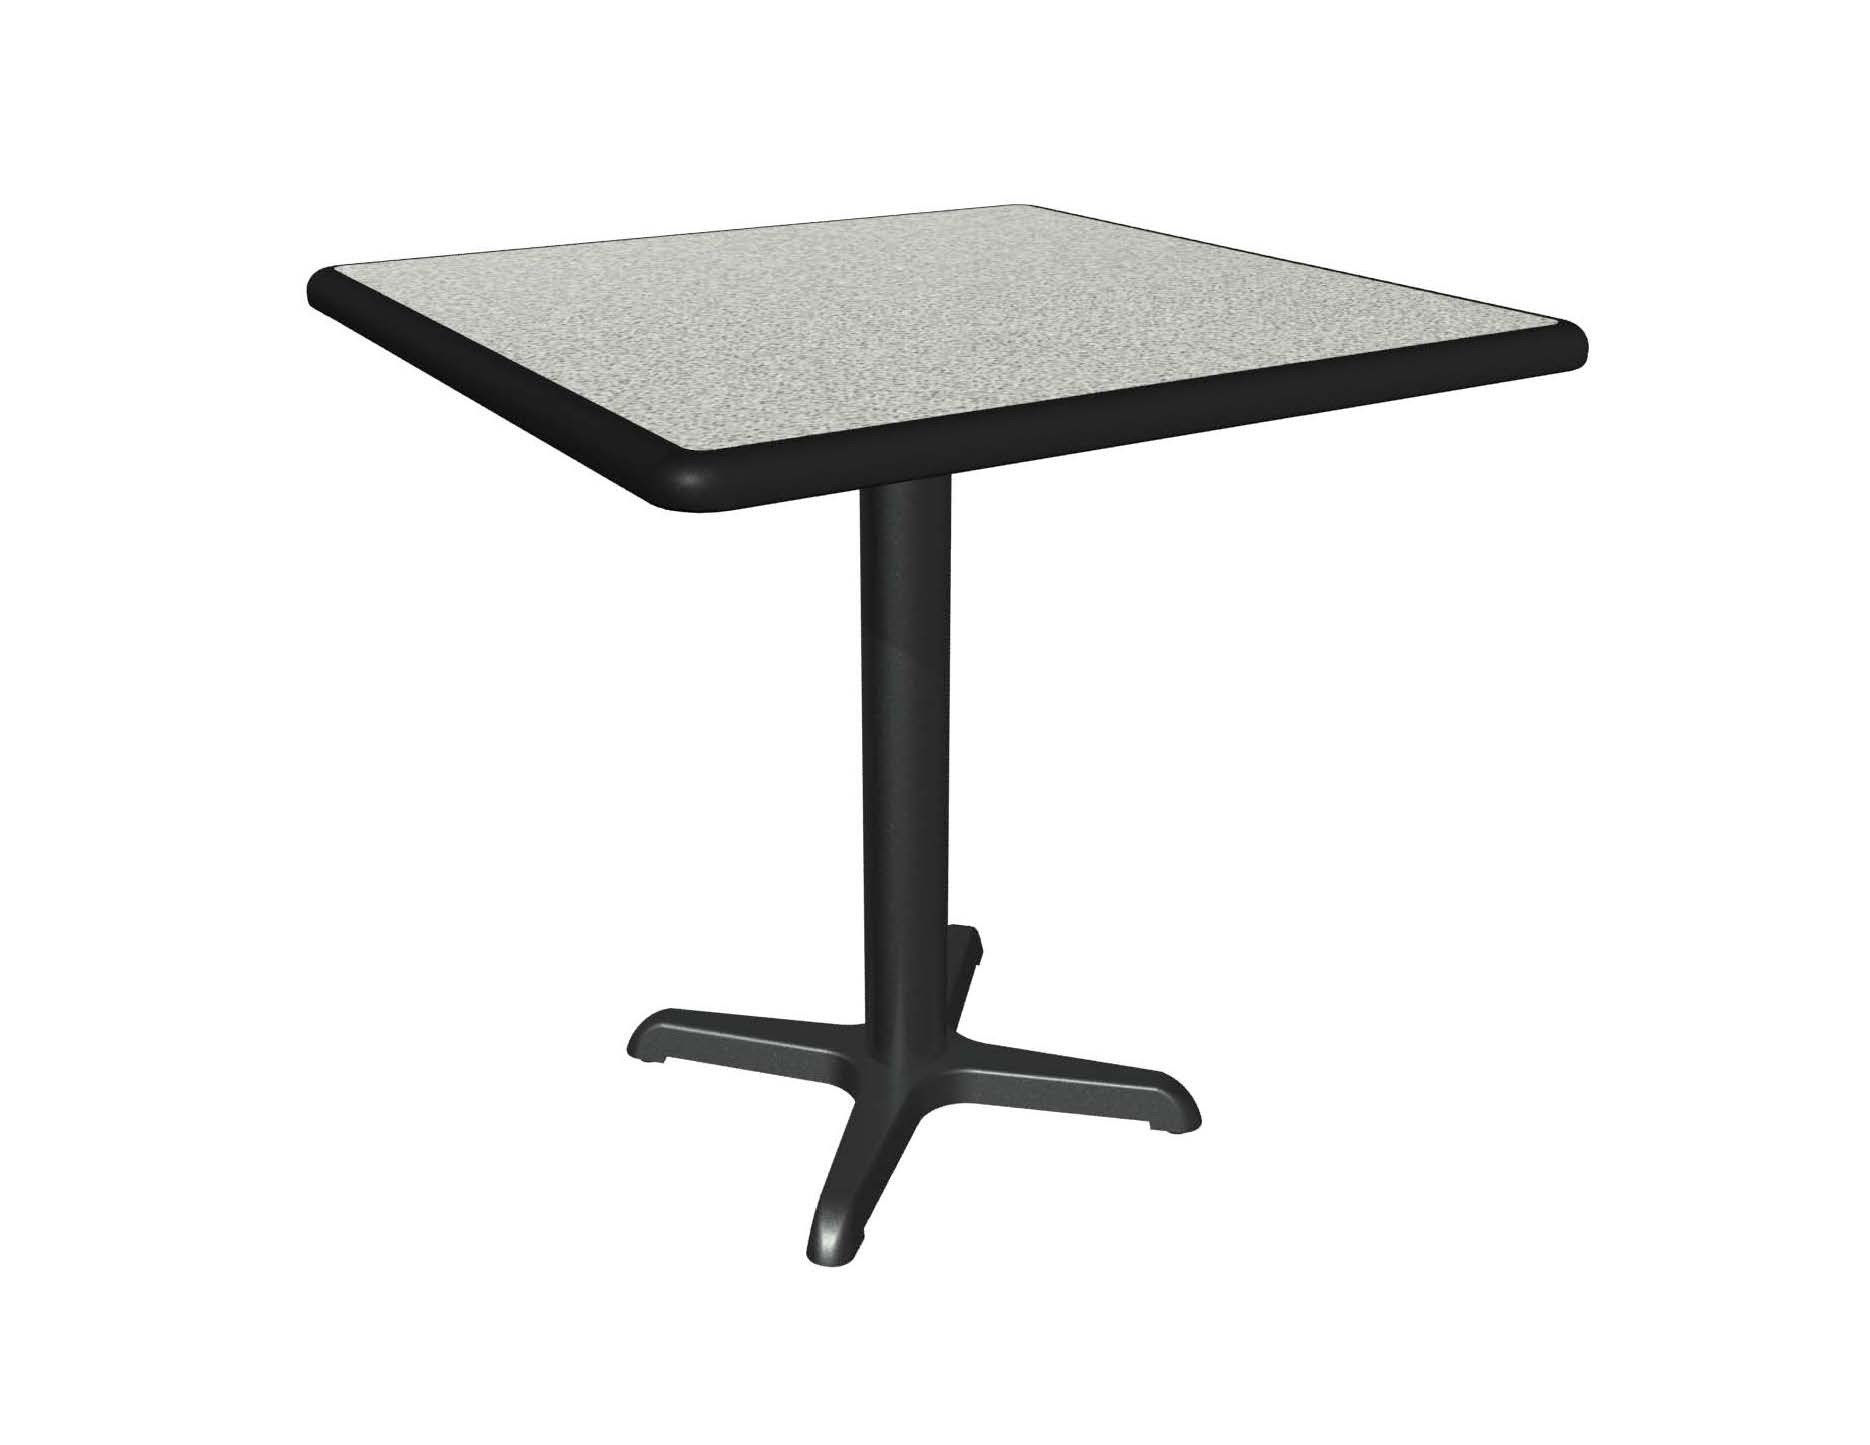 Graphite Nebula Laminate Table Top, Black Dur A Edge